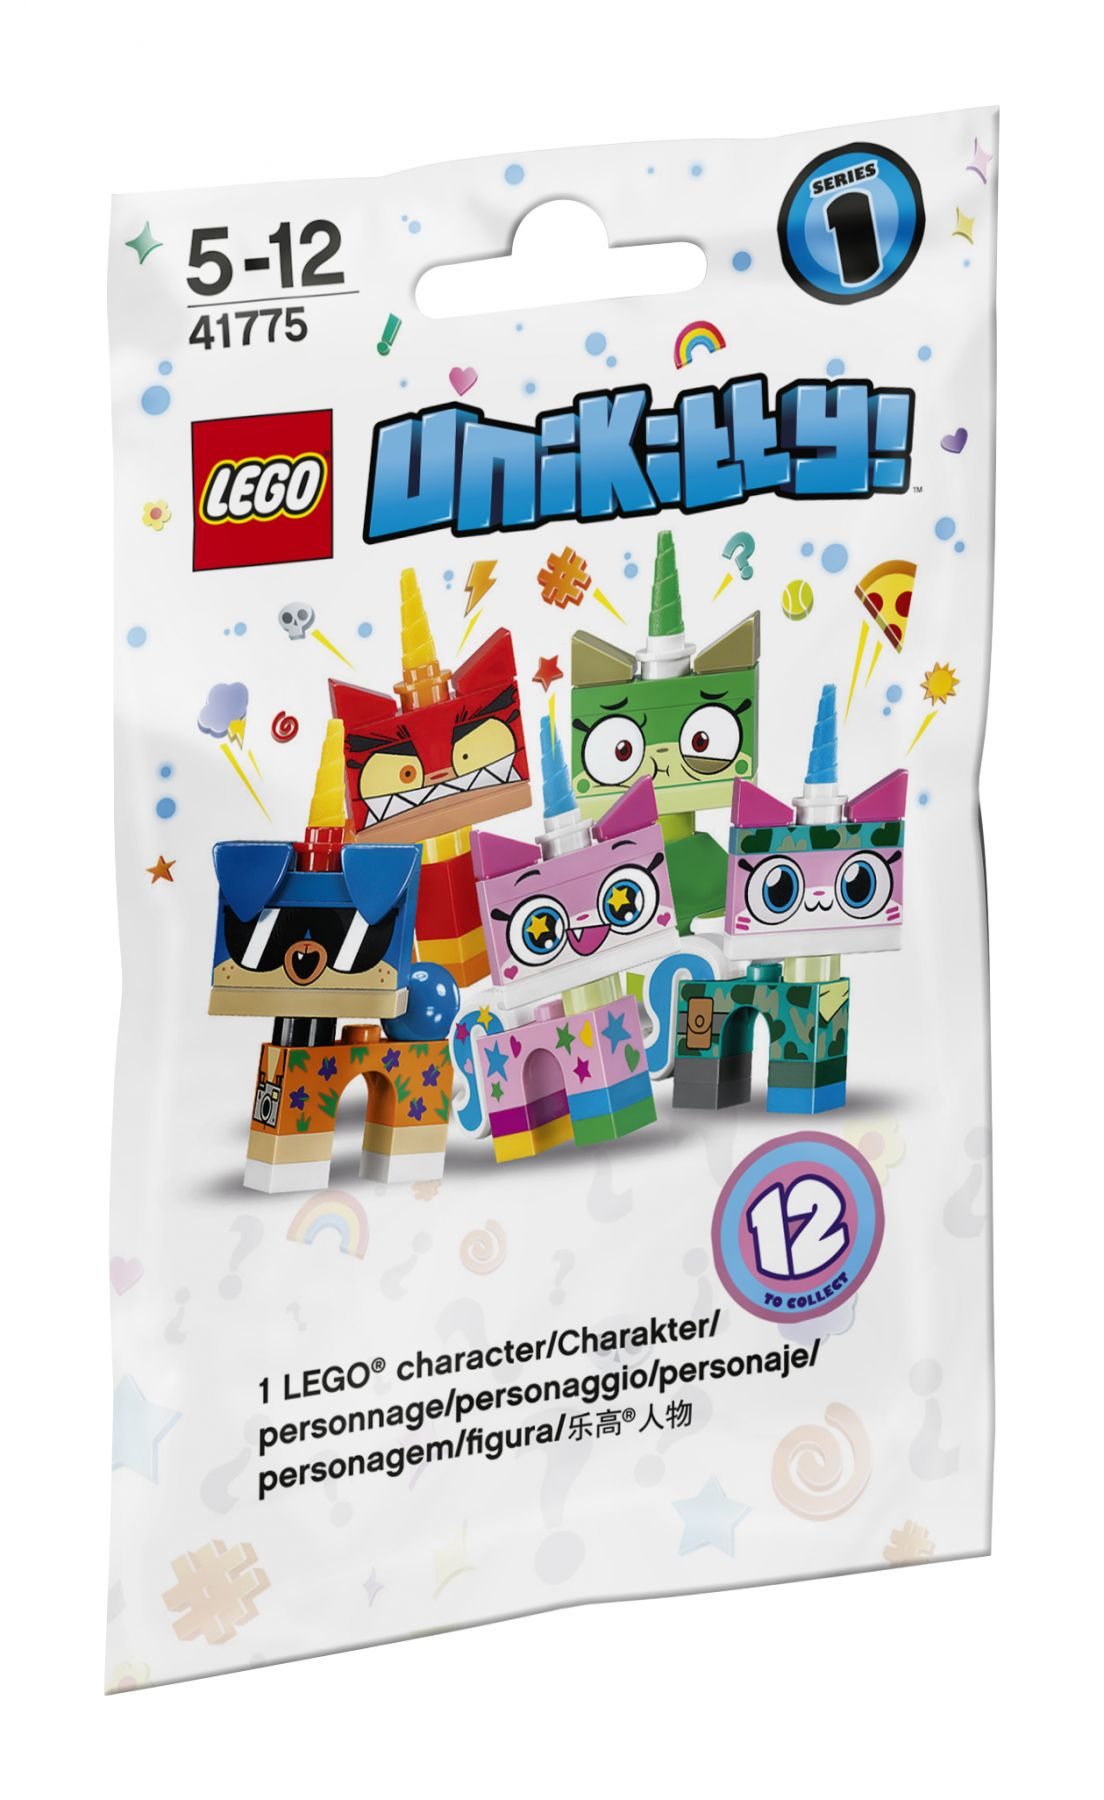 LEGO Collectable Minifigures 41775 Unikitty Sammelserie 1